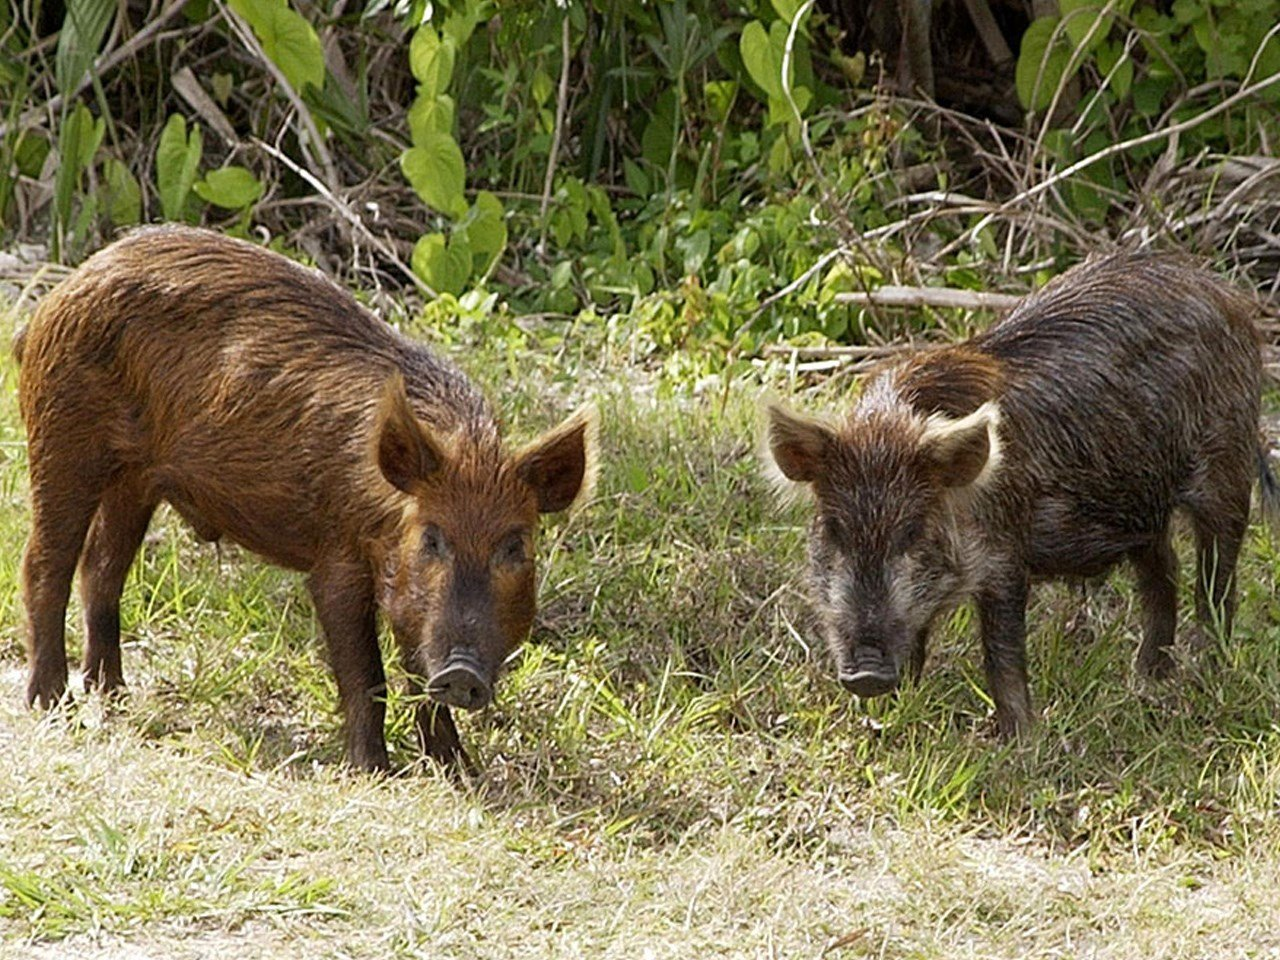 Texas lawmakers have approved hunting feral hogs from hot air balloons